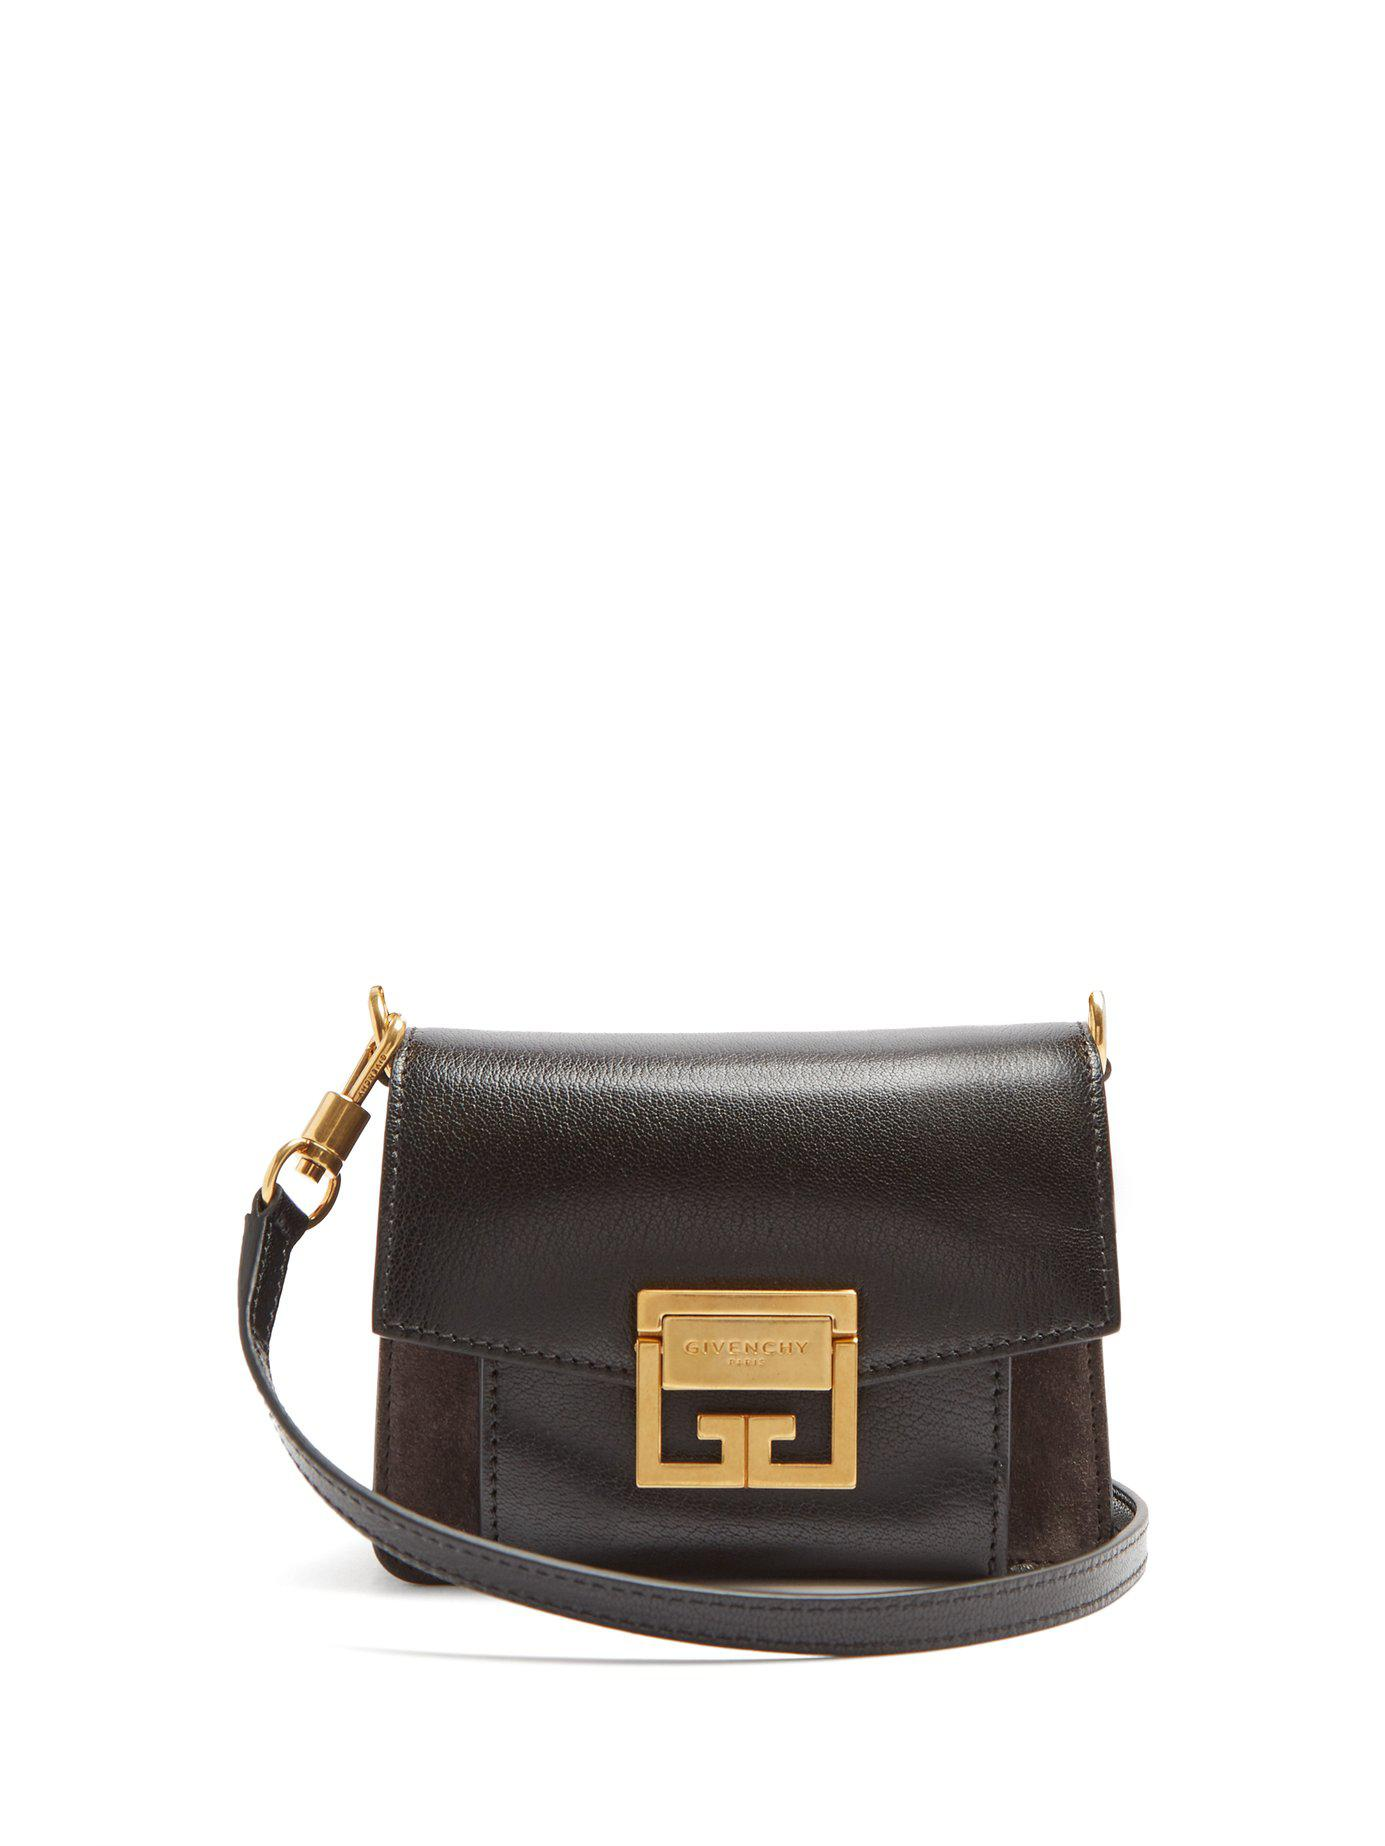 886eec5d3c5d49 Givenchy Gv3 Mini Suede And Leather Cross Body Bag in Black - Lyst